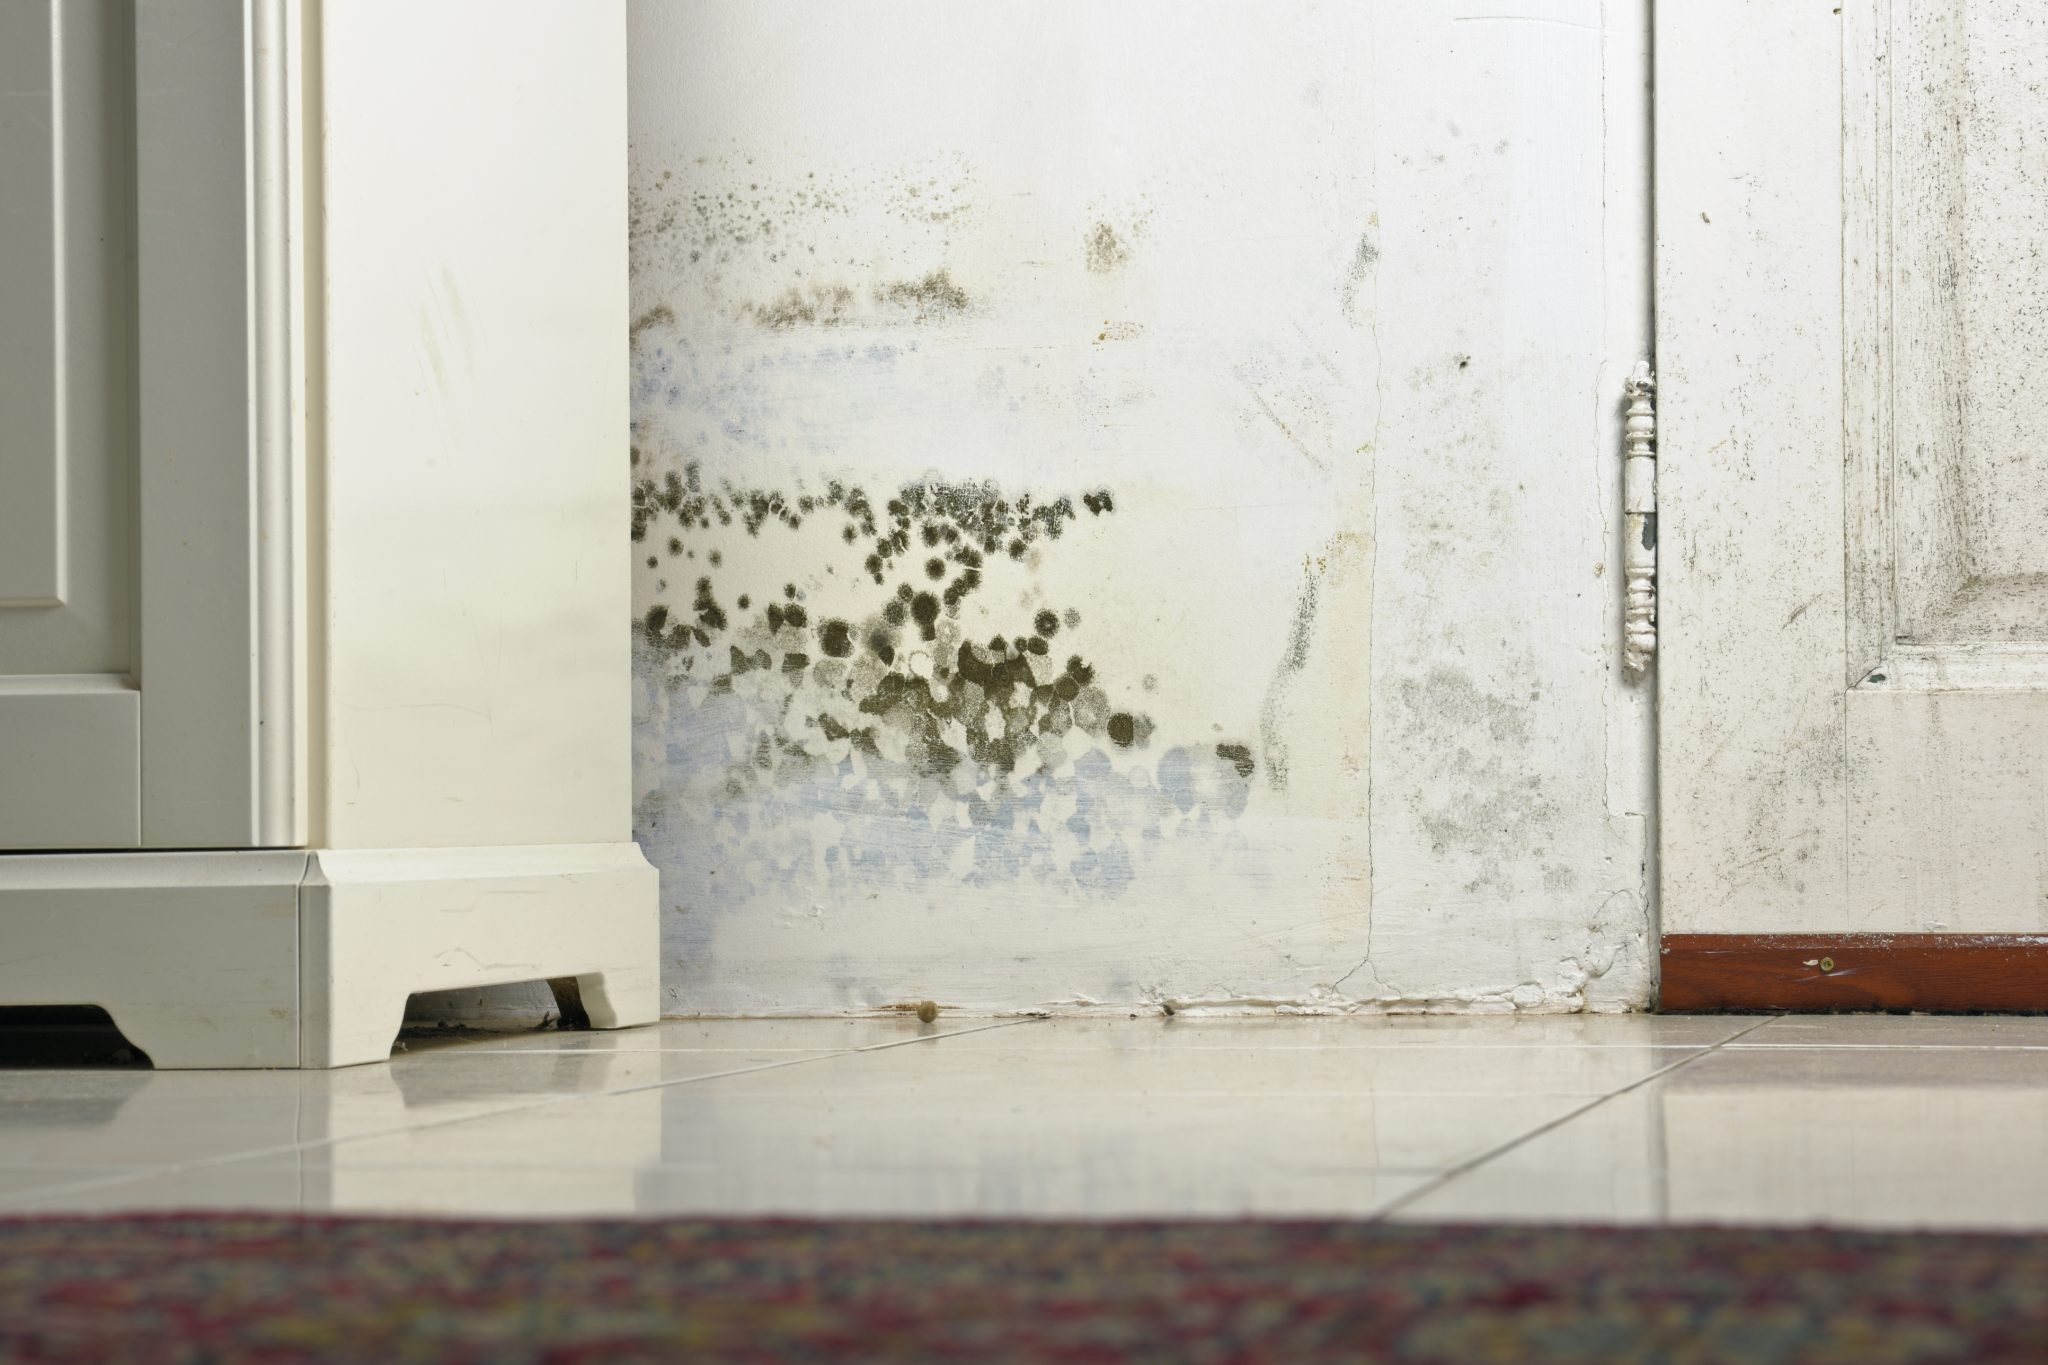 Mold remediation in New York City